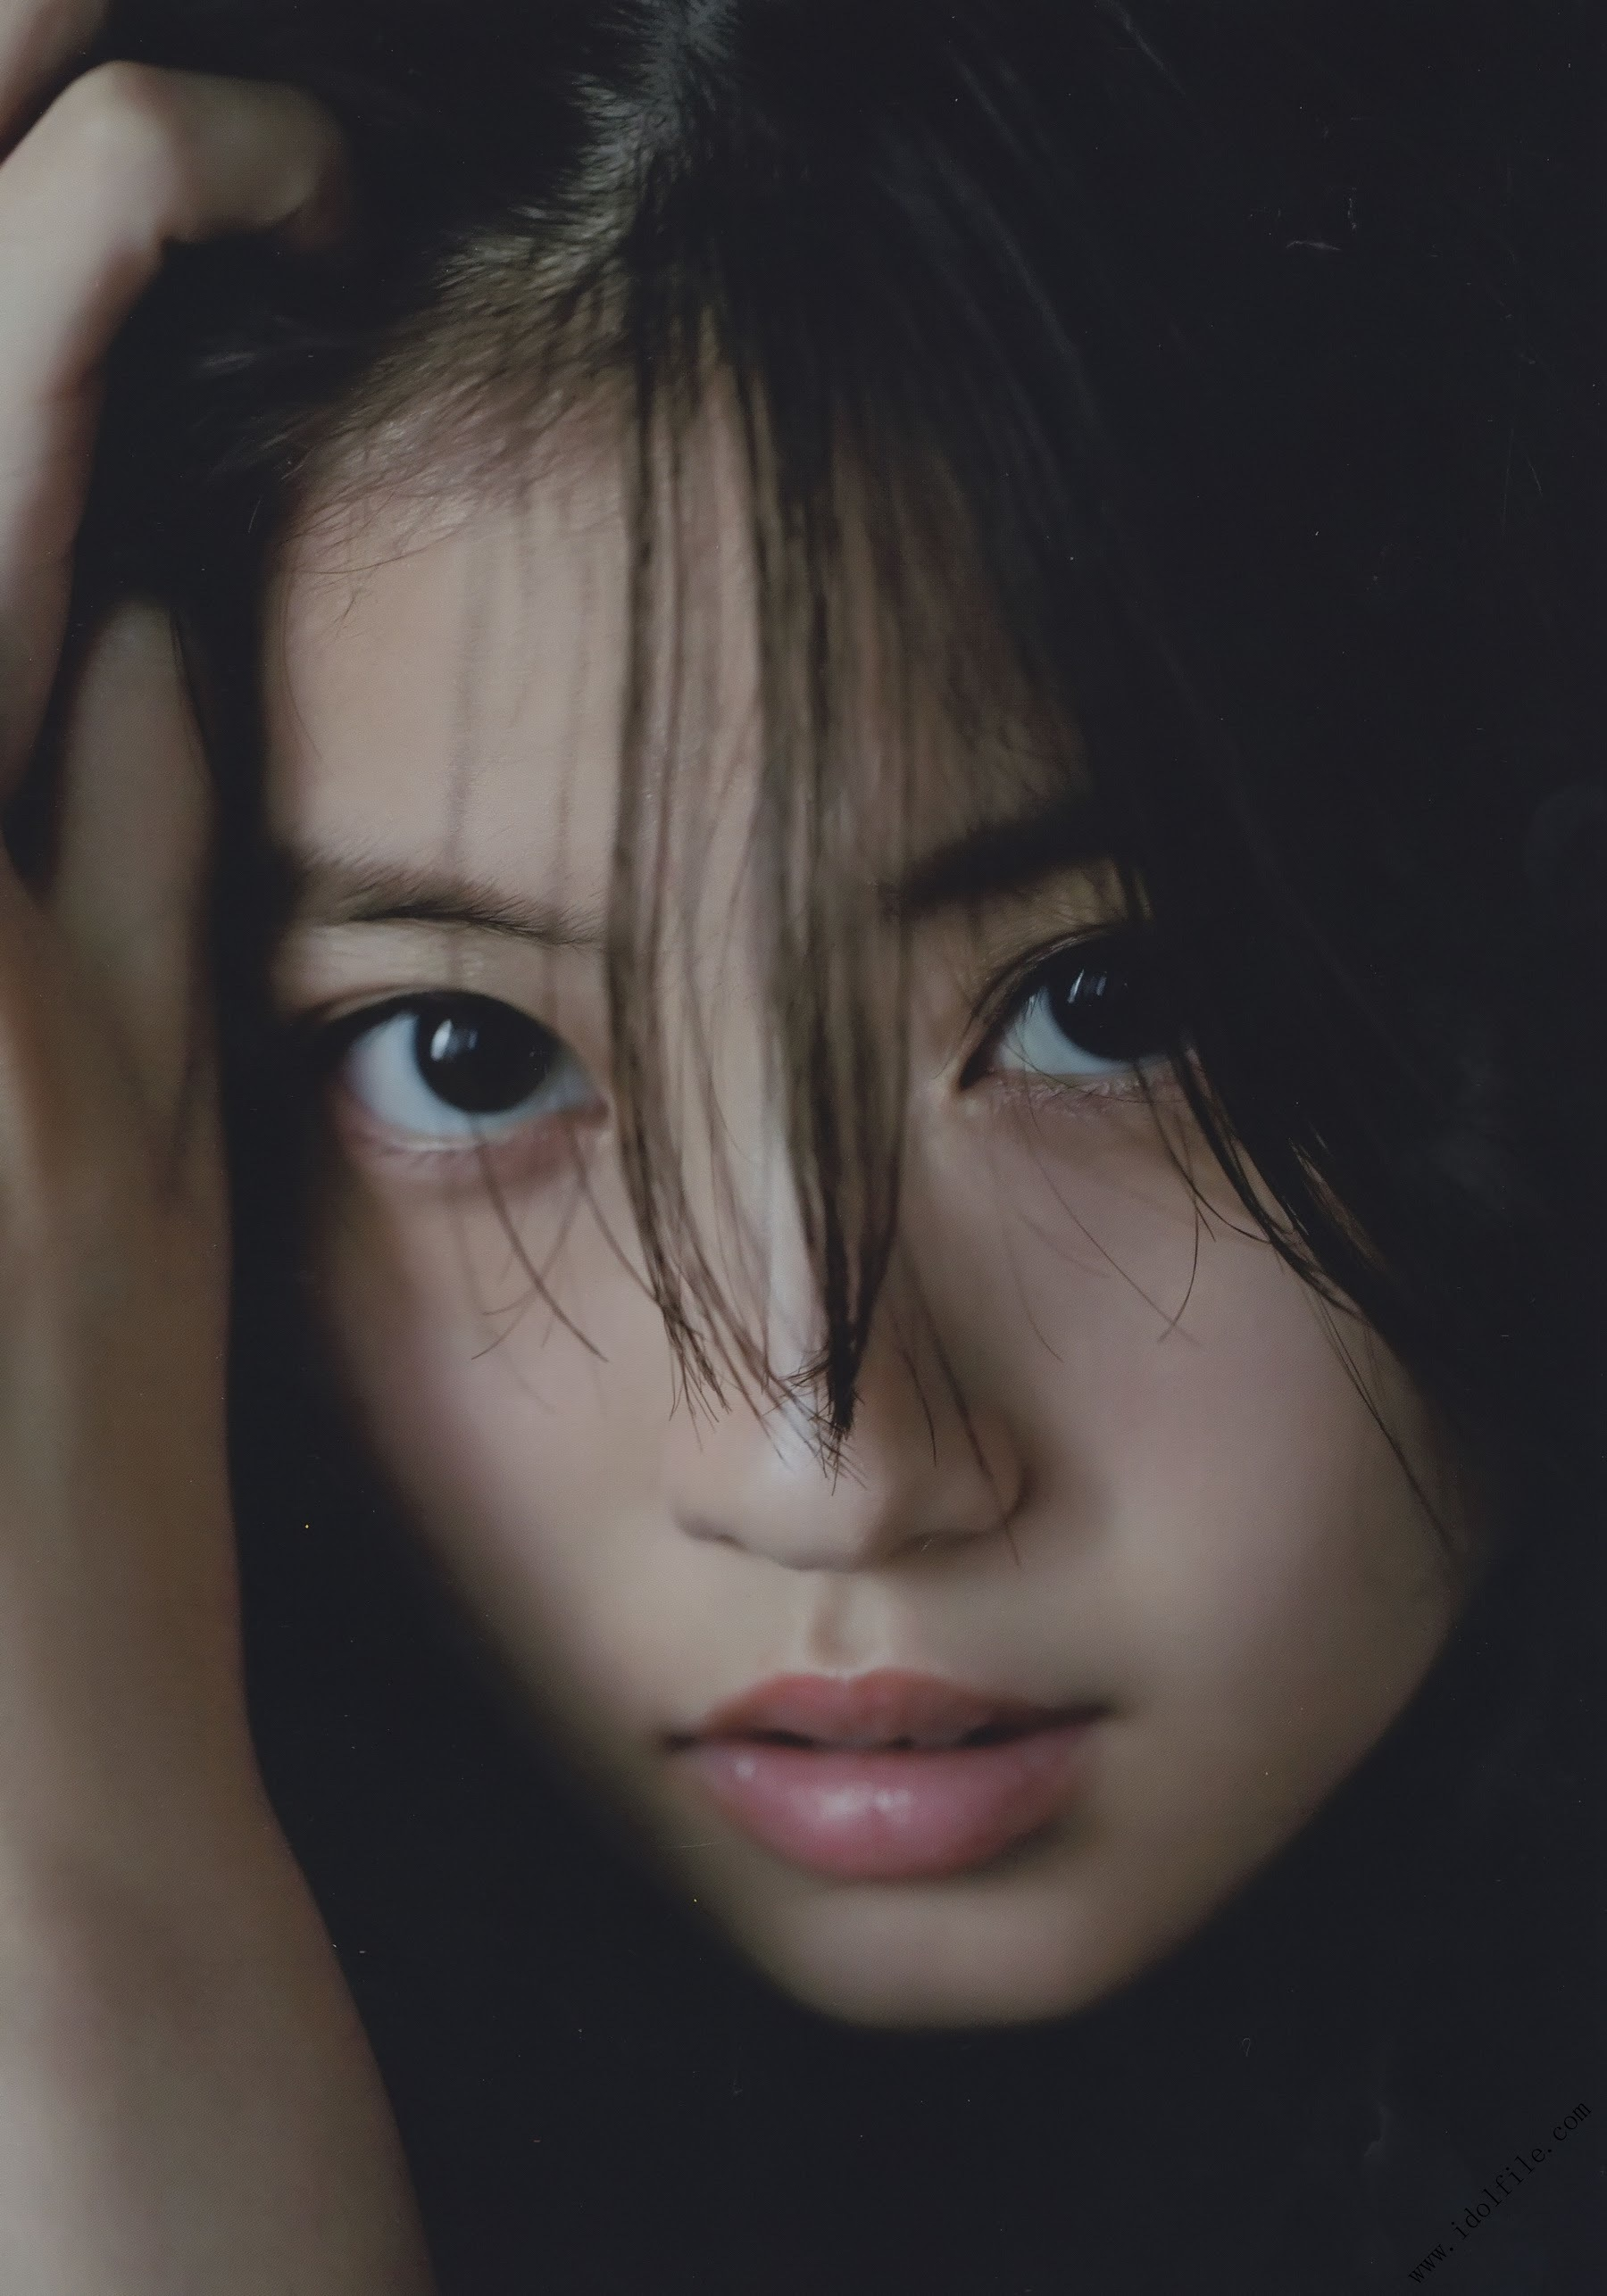 Pretty and beautiful, 22 years old and innocent Moving to the next stage as an actress Mio Imada116